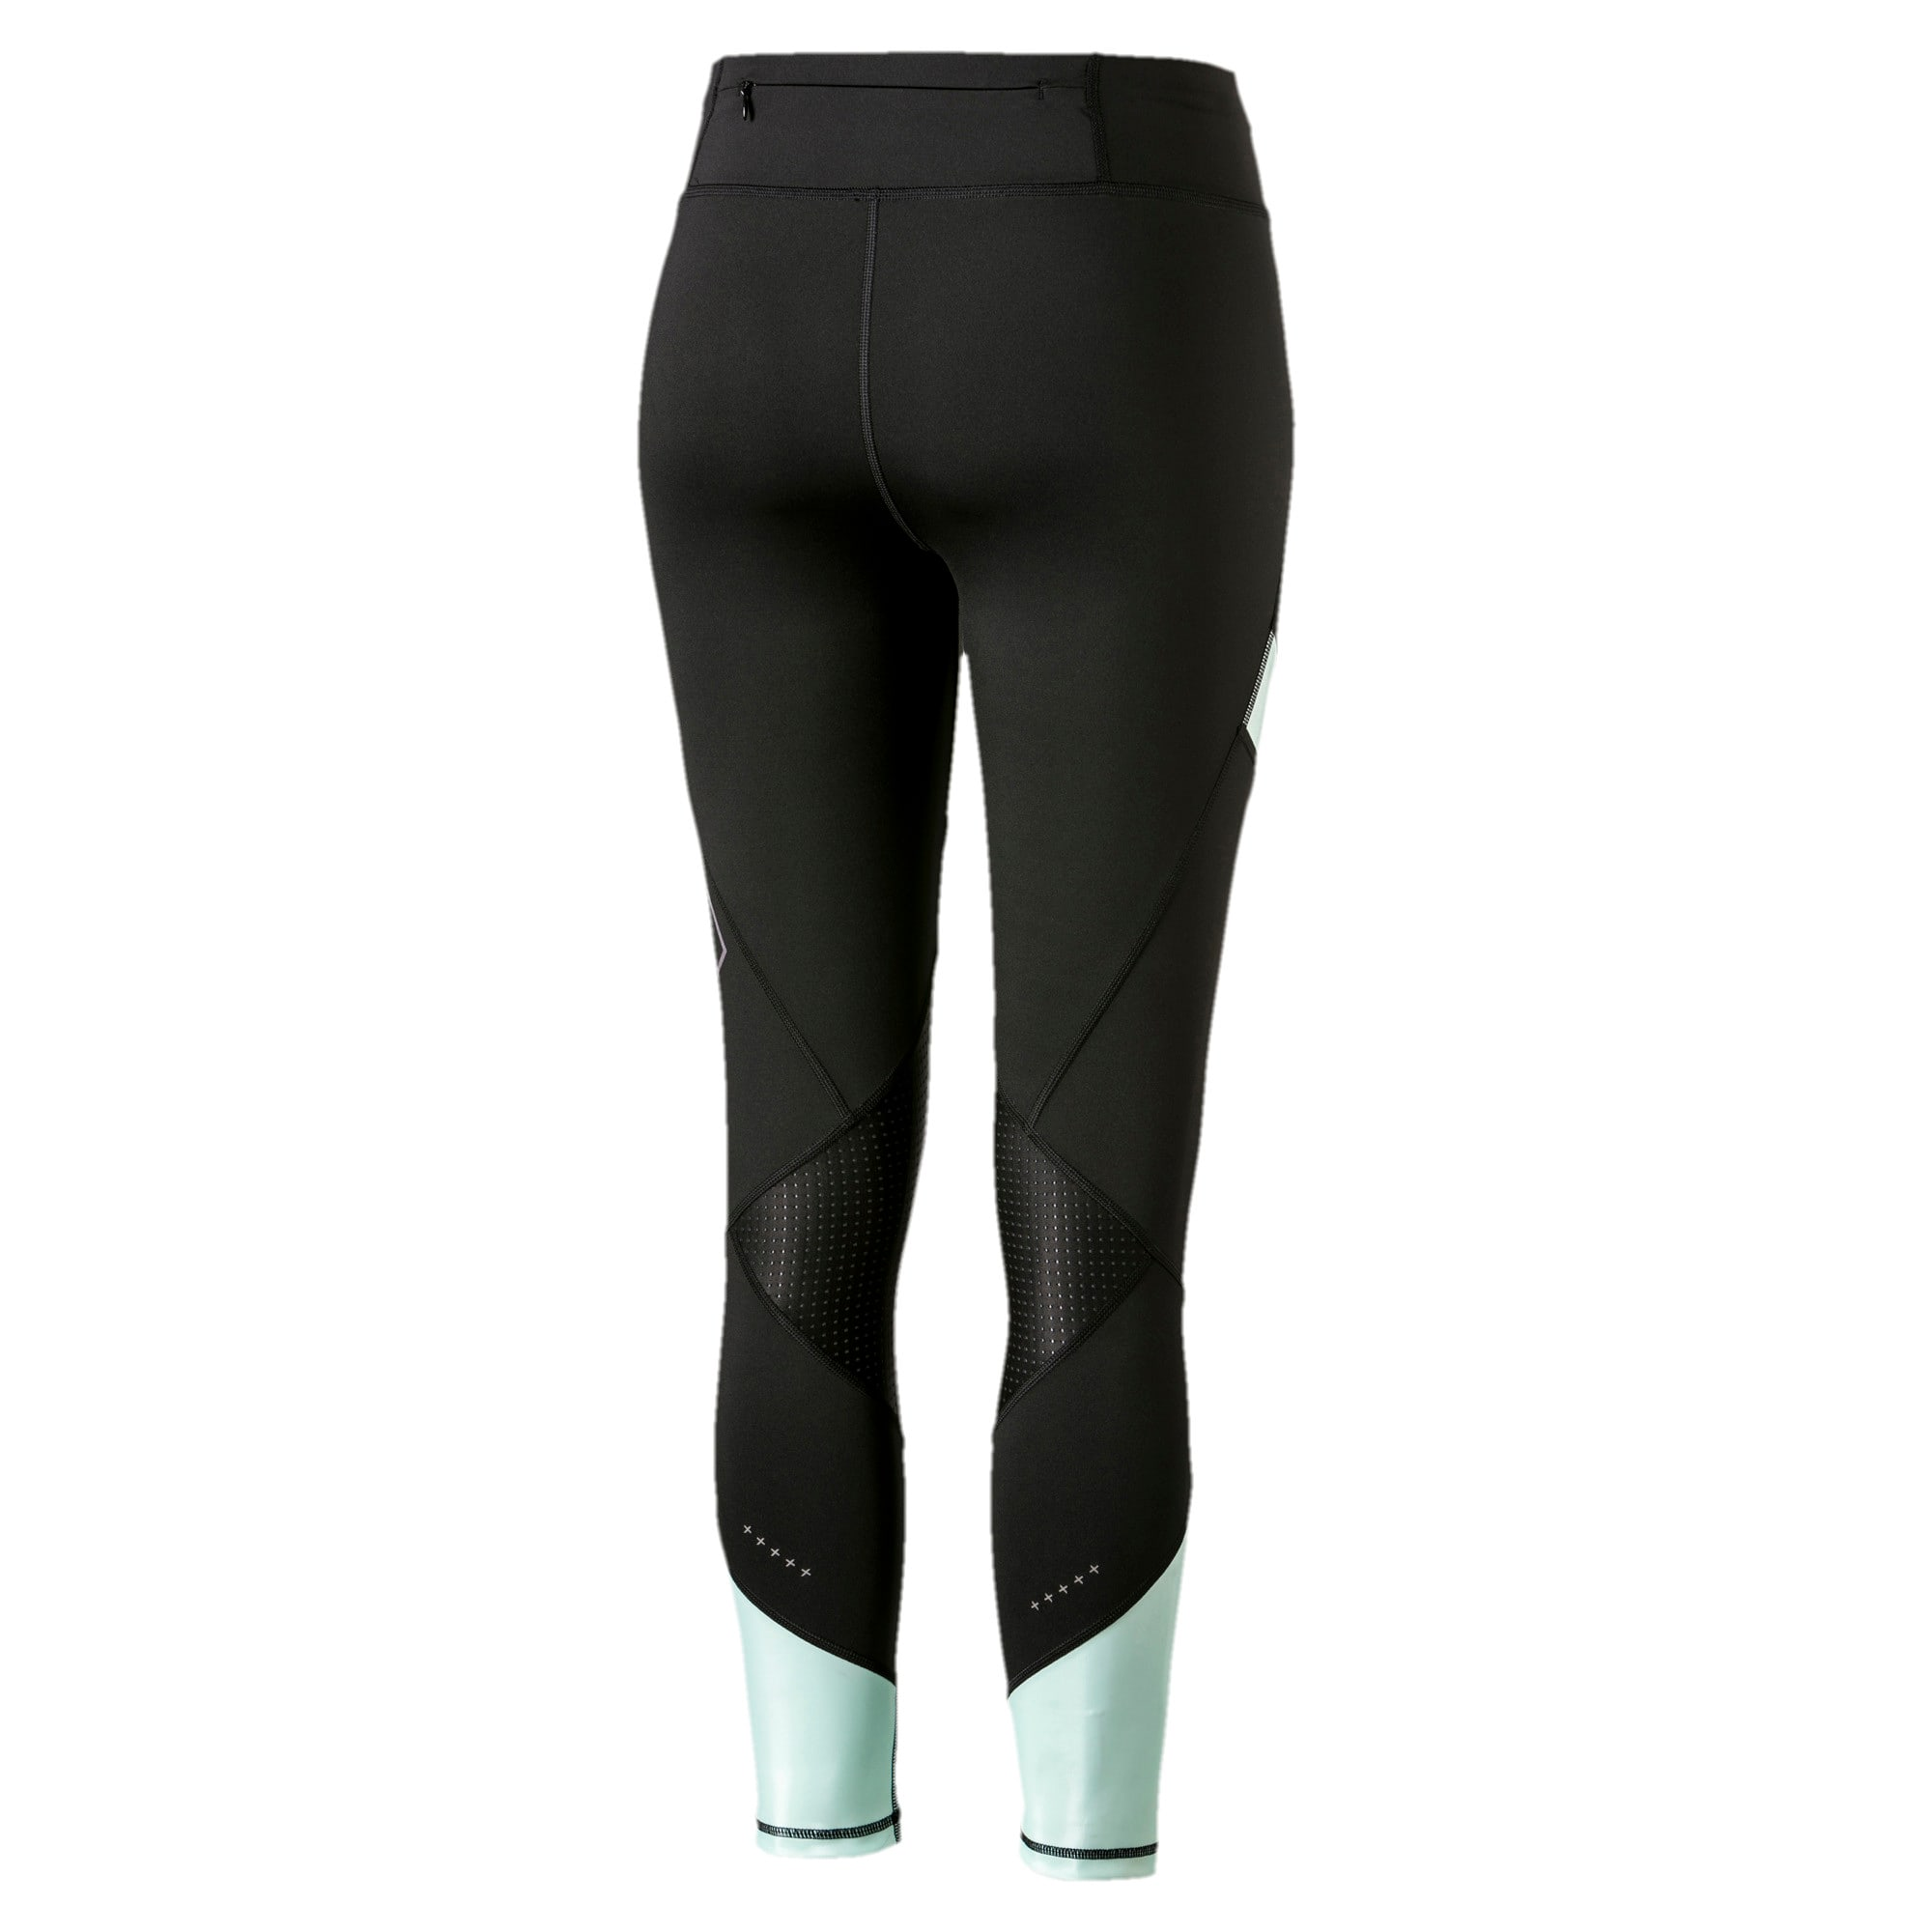 Thumbnail 5 of Elite Speed Women's Leggings, Puma Black-Fair Aqua, medium